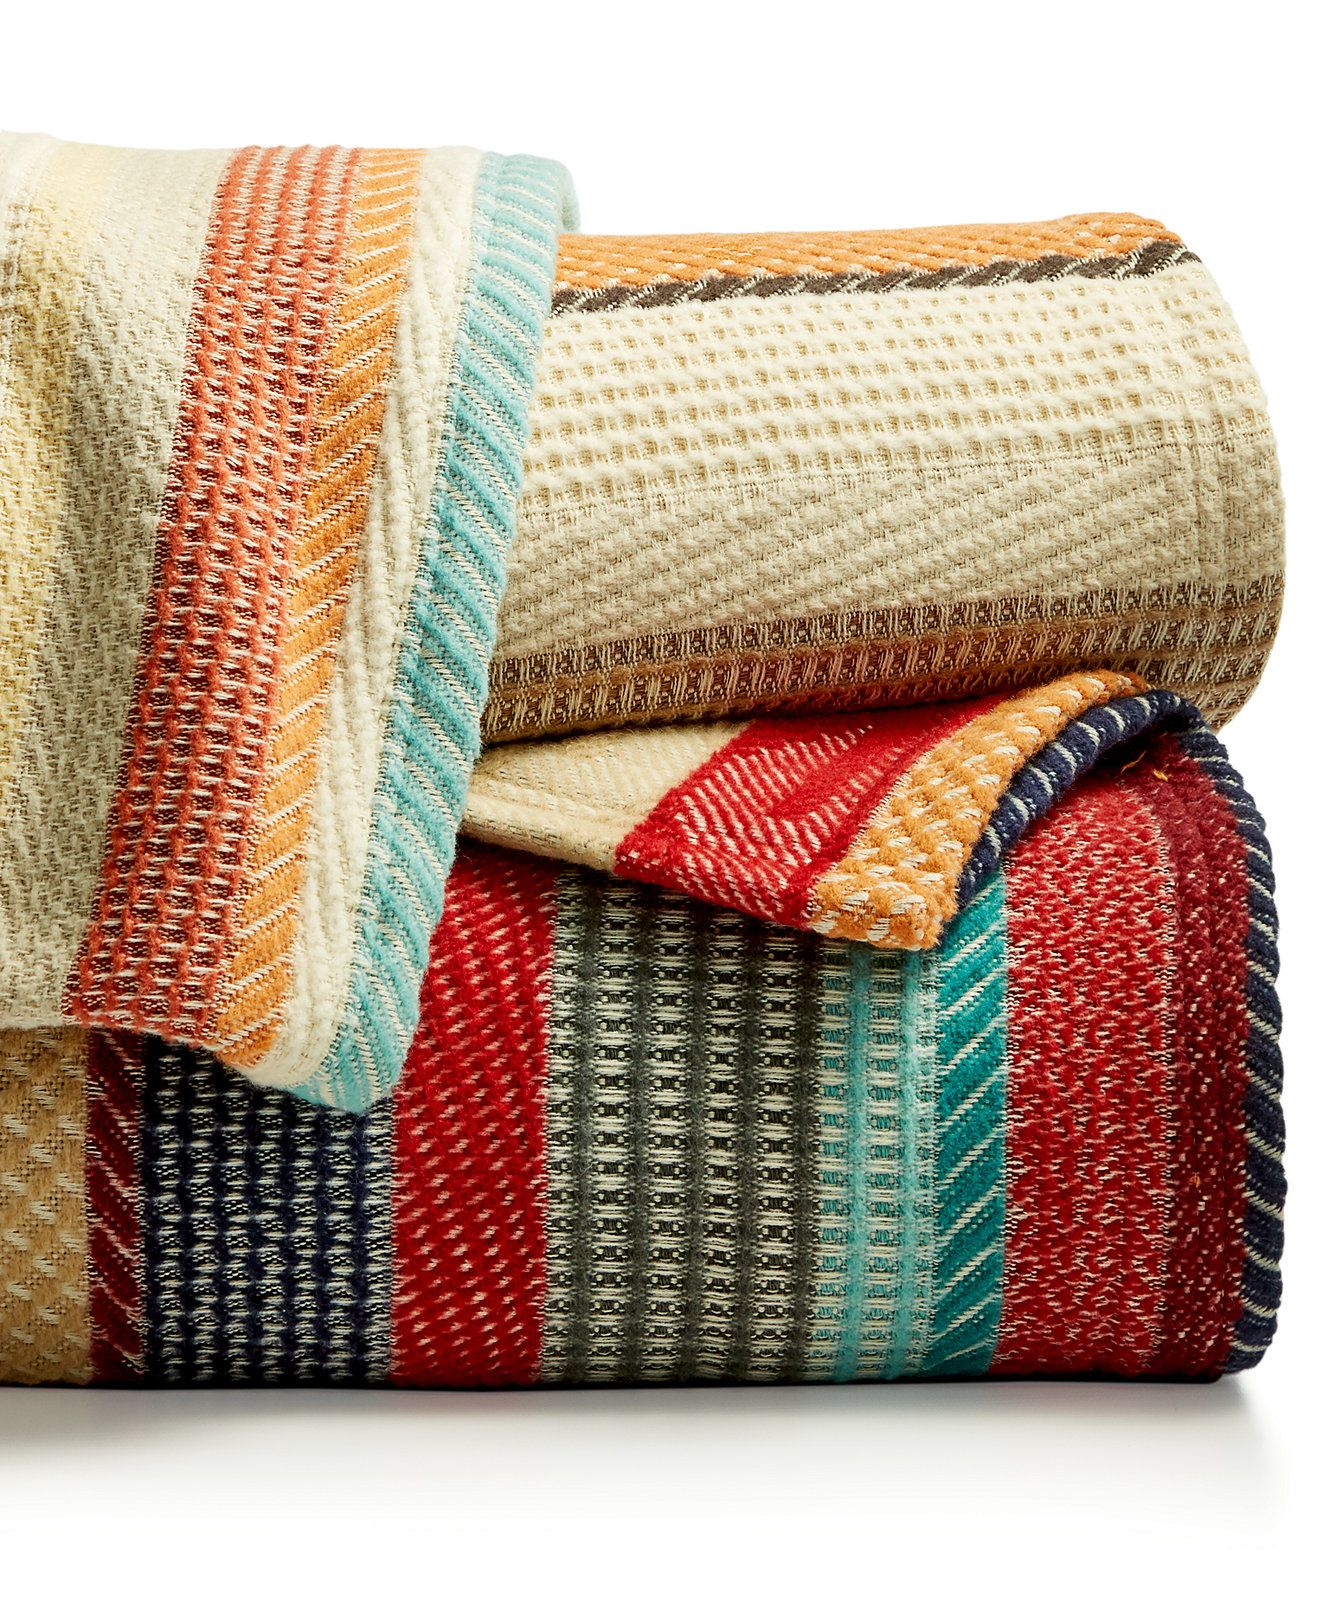 Pendleton Cotton Jacquard Chimayo Blankets Blankets Amp Throws Bed Amp Bath Macy 39 S Twin Blanket Bed Throws Blankets Throws